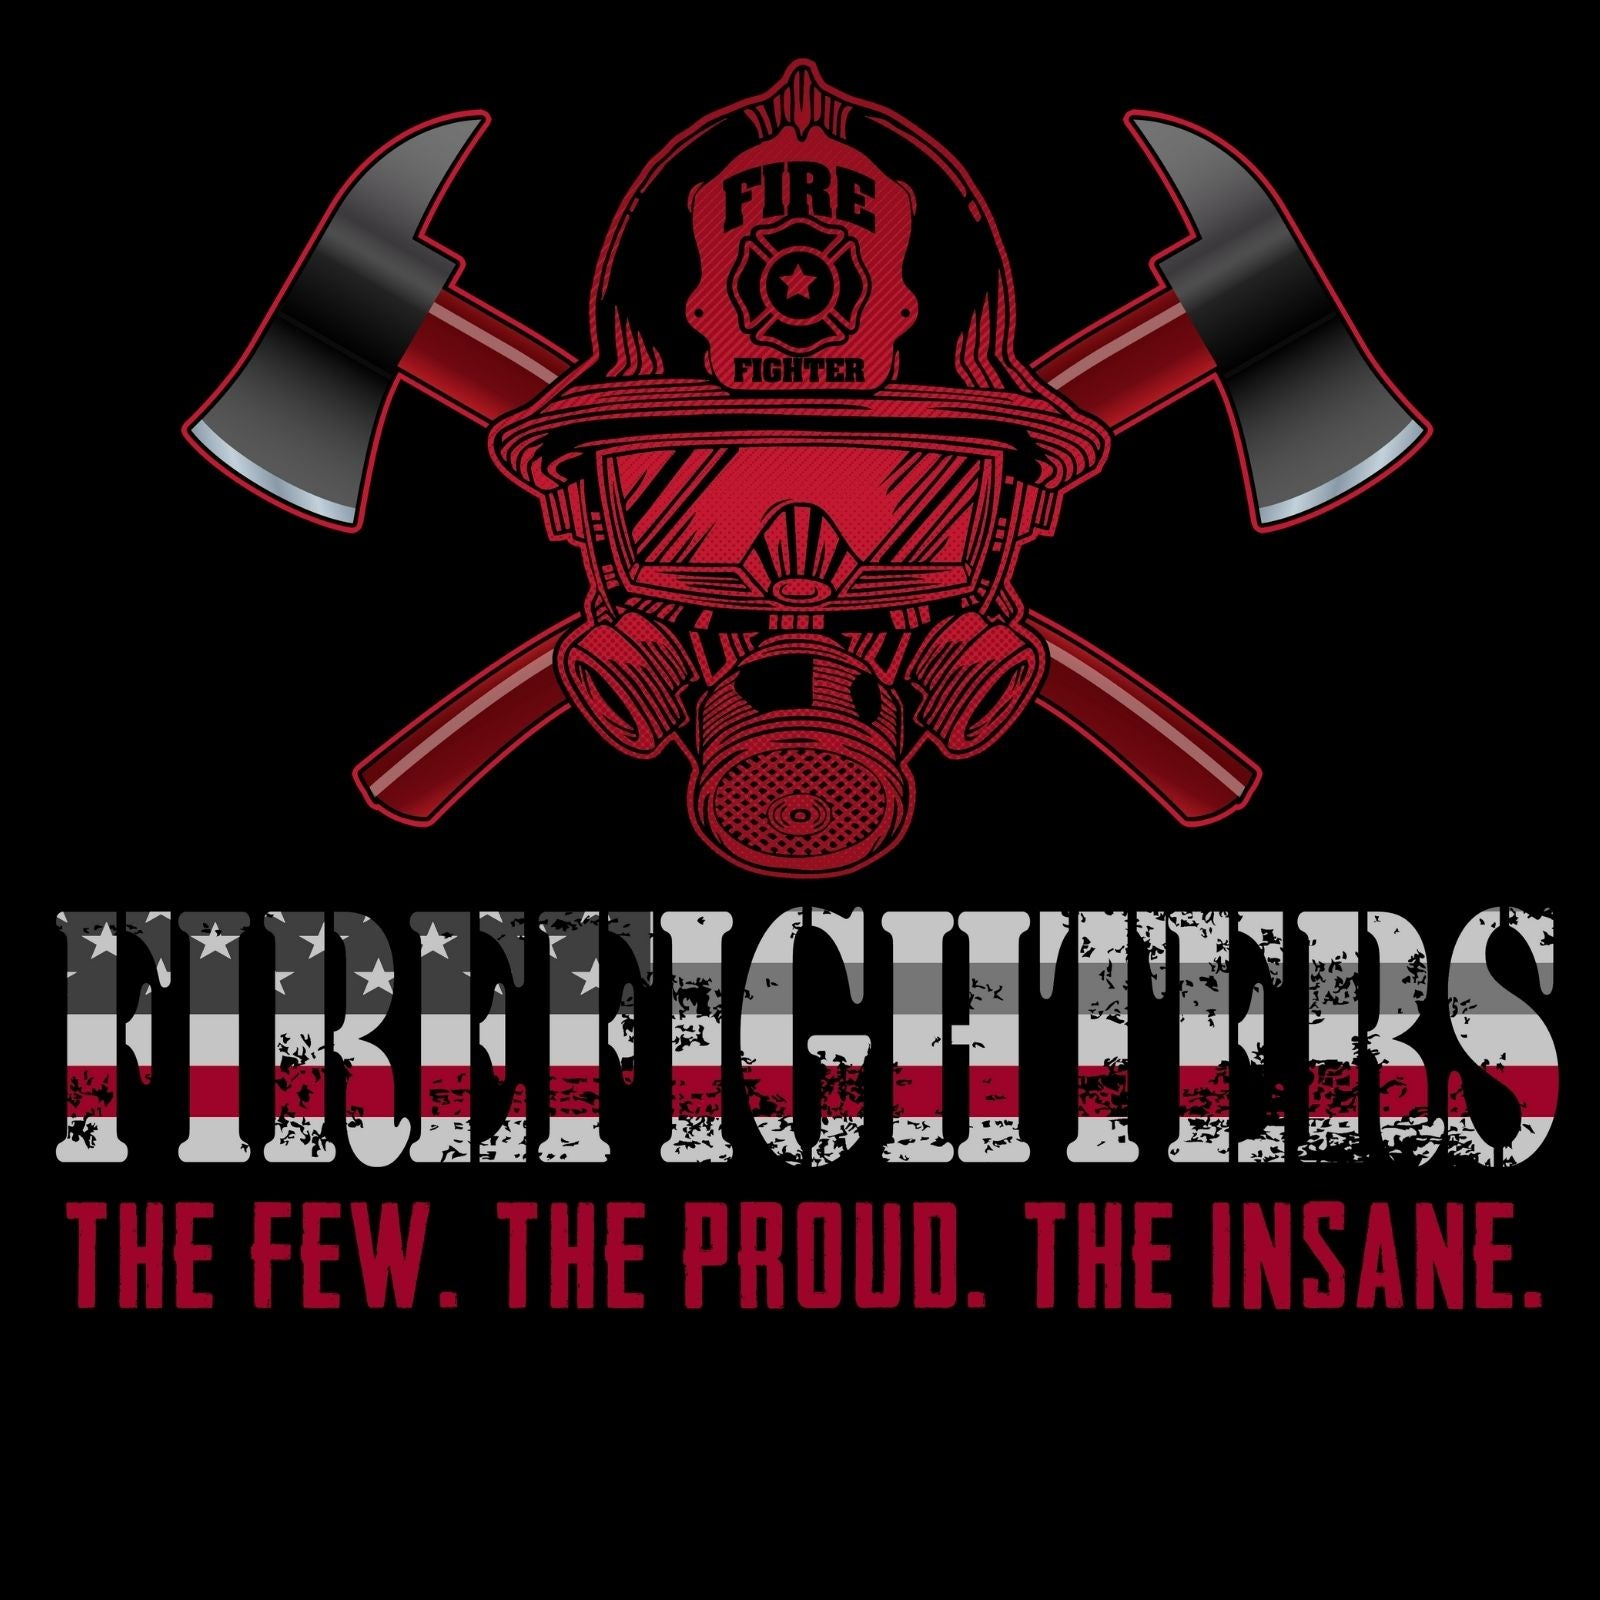 Firefighters The Few The Proud The Insane - Bastard Graphics